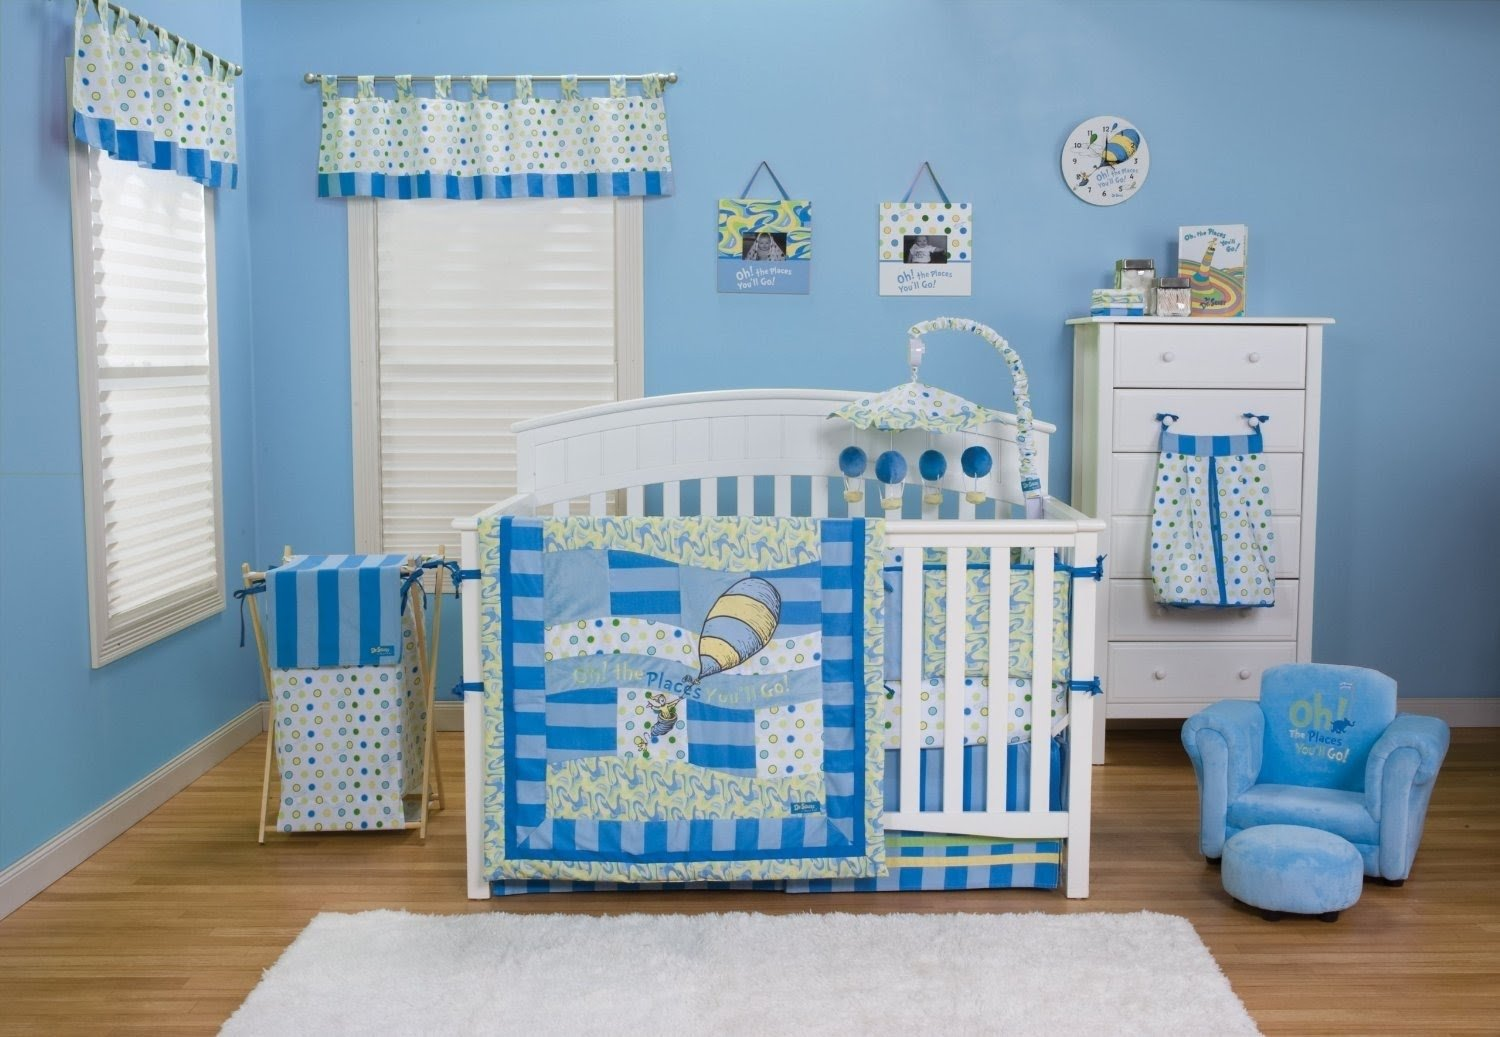 10 Unique Baby Boy Room Decor Ideas baby nursery ideas 26 tremendous baby boy themes for nursery baby 2020